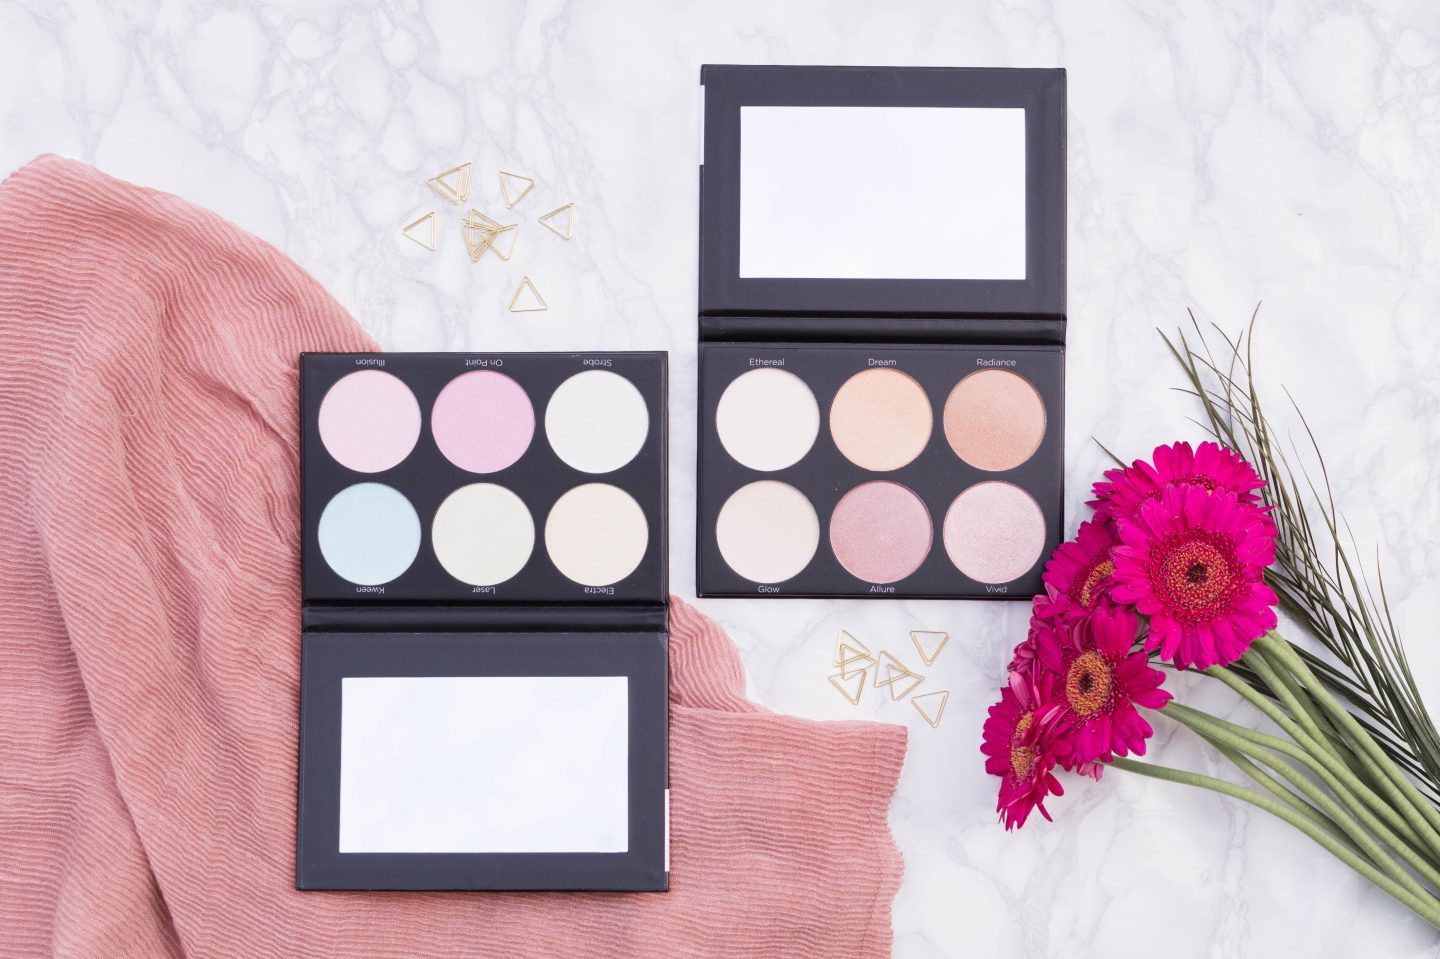 BH Cosmetics Highlight Palettes – Dupe for Anastasia?